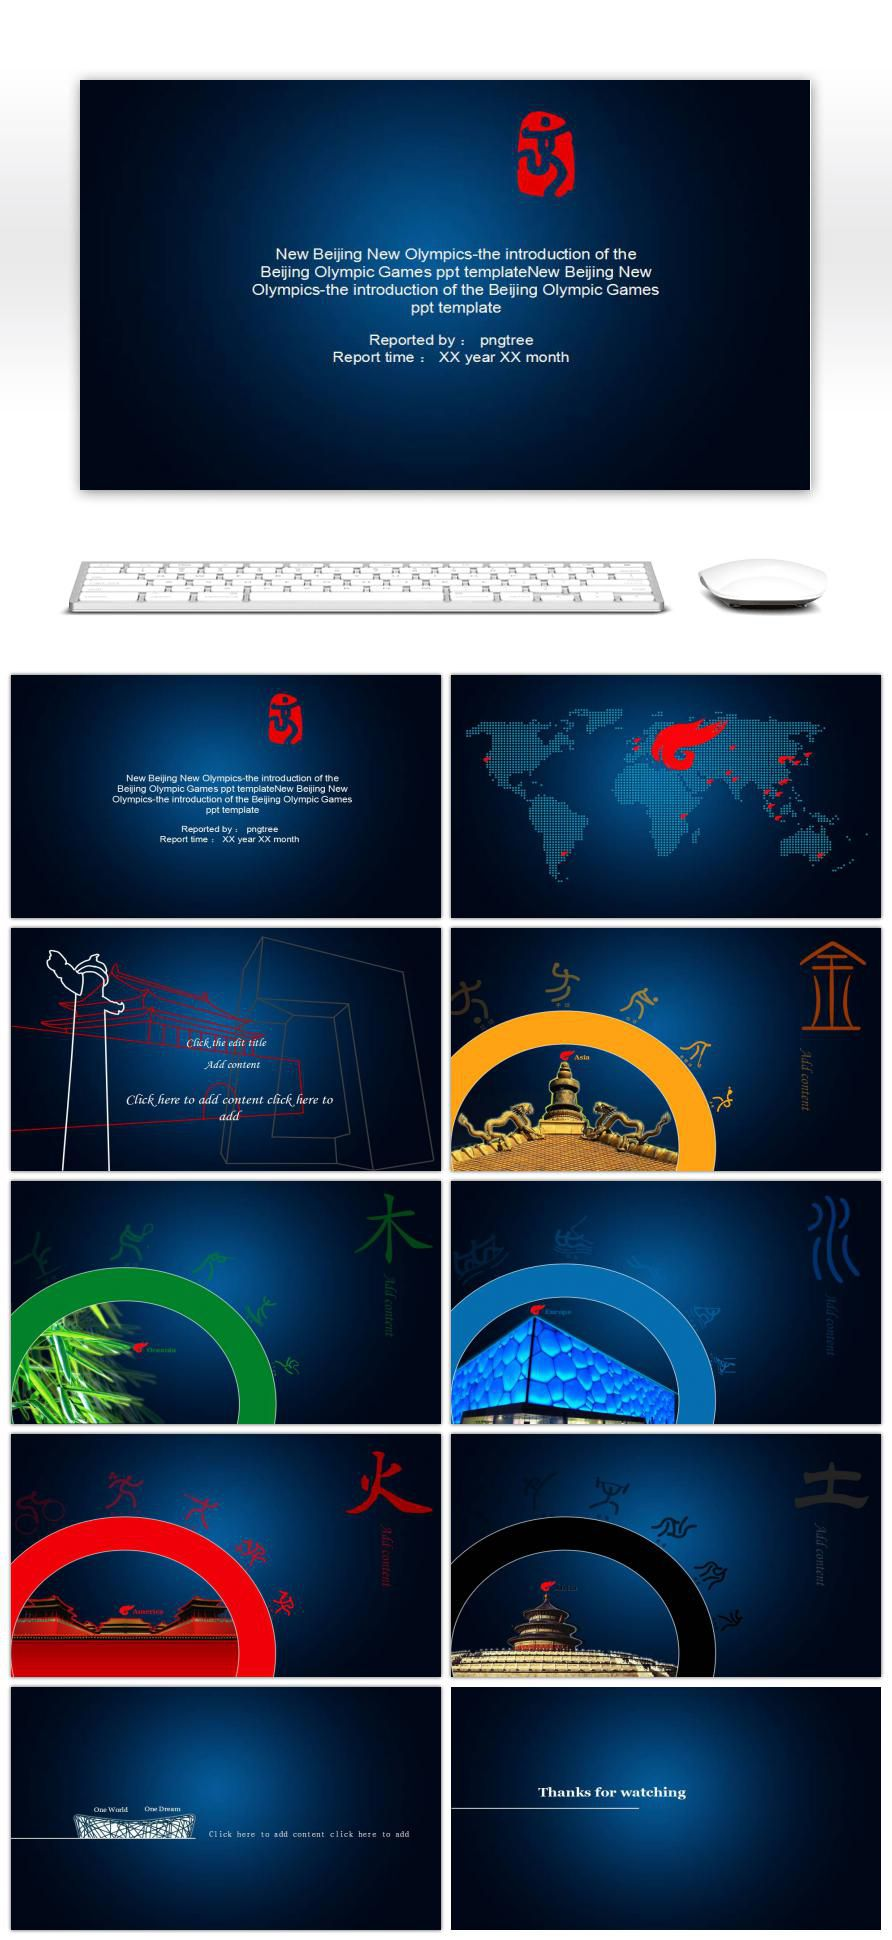 Powerpoint templates free olympics image collections powerpoint free olympic games powerpoint template drawing charts concrete water free olympic games powerpoint template free olympic toneelgroepblik Gallery